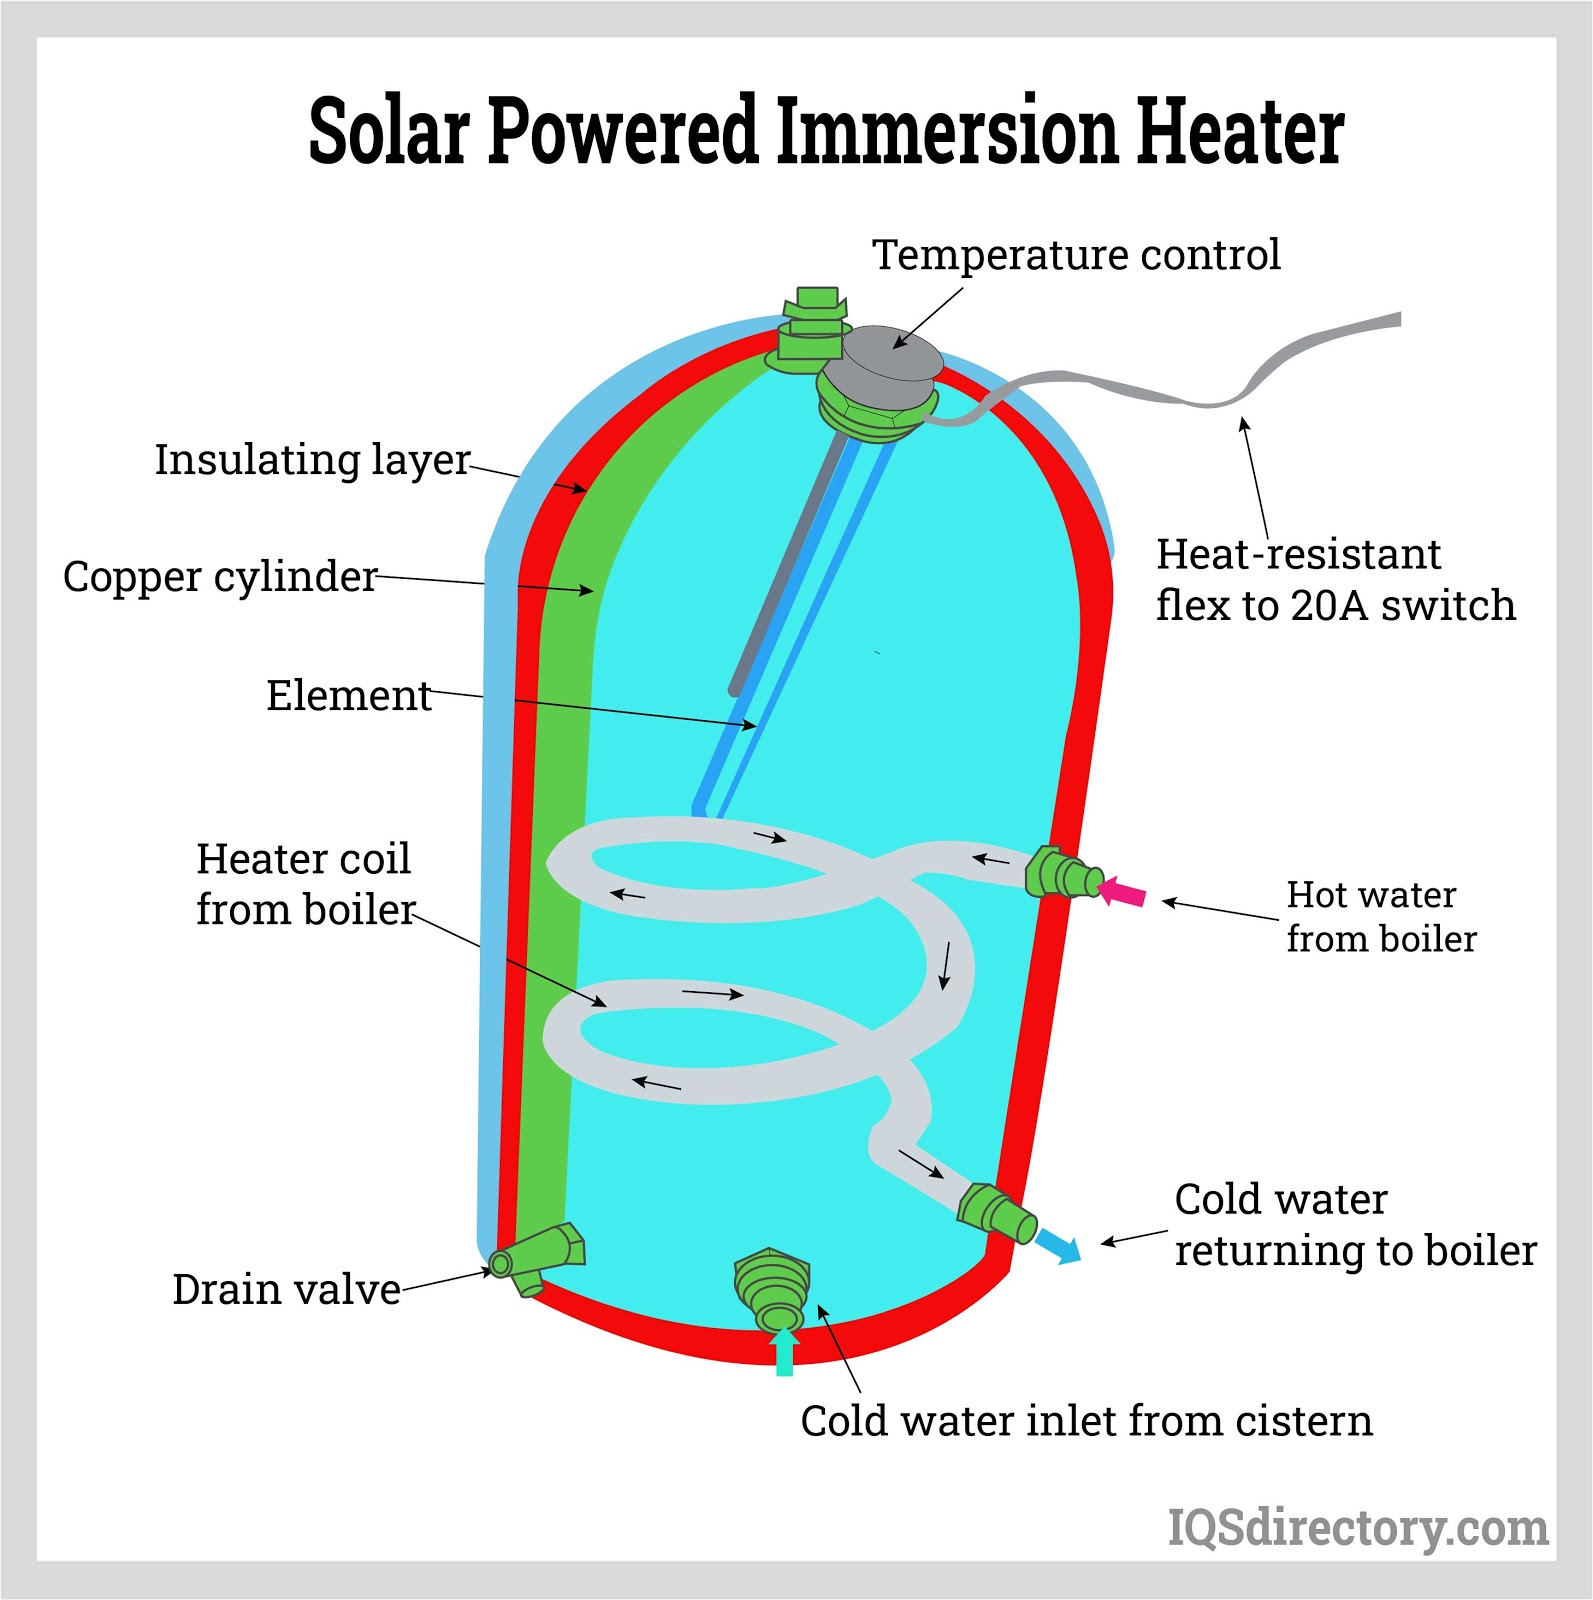 Solar Powered Immersion Heater